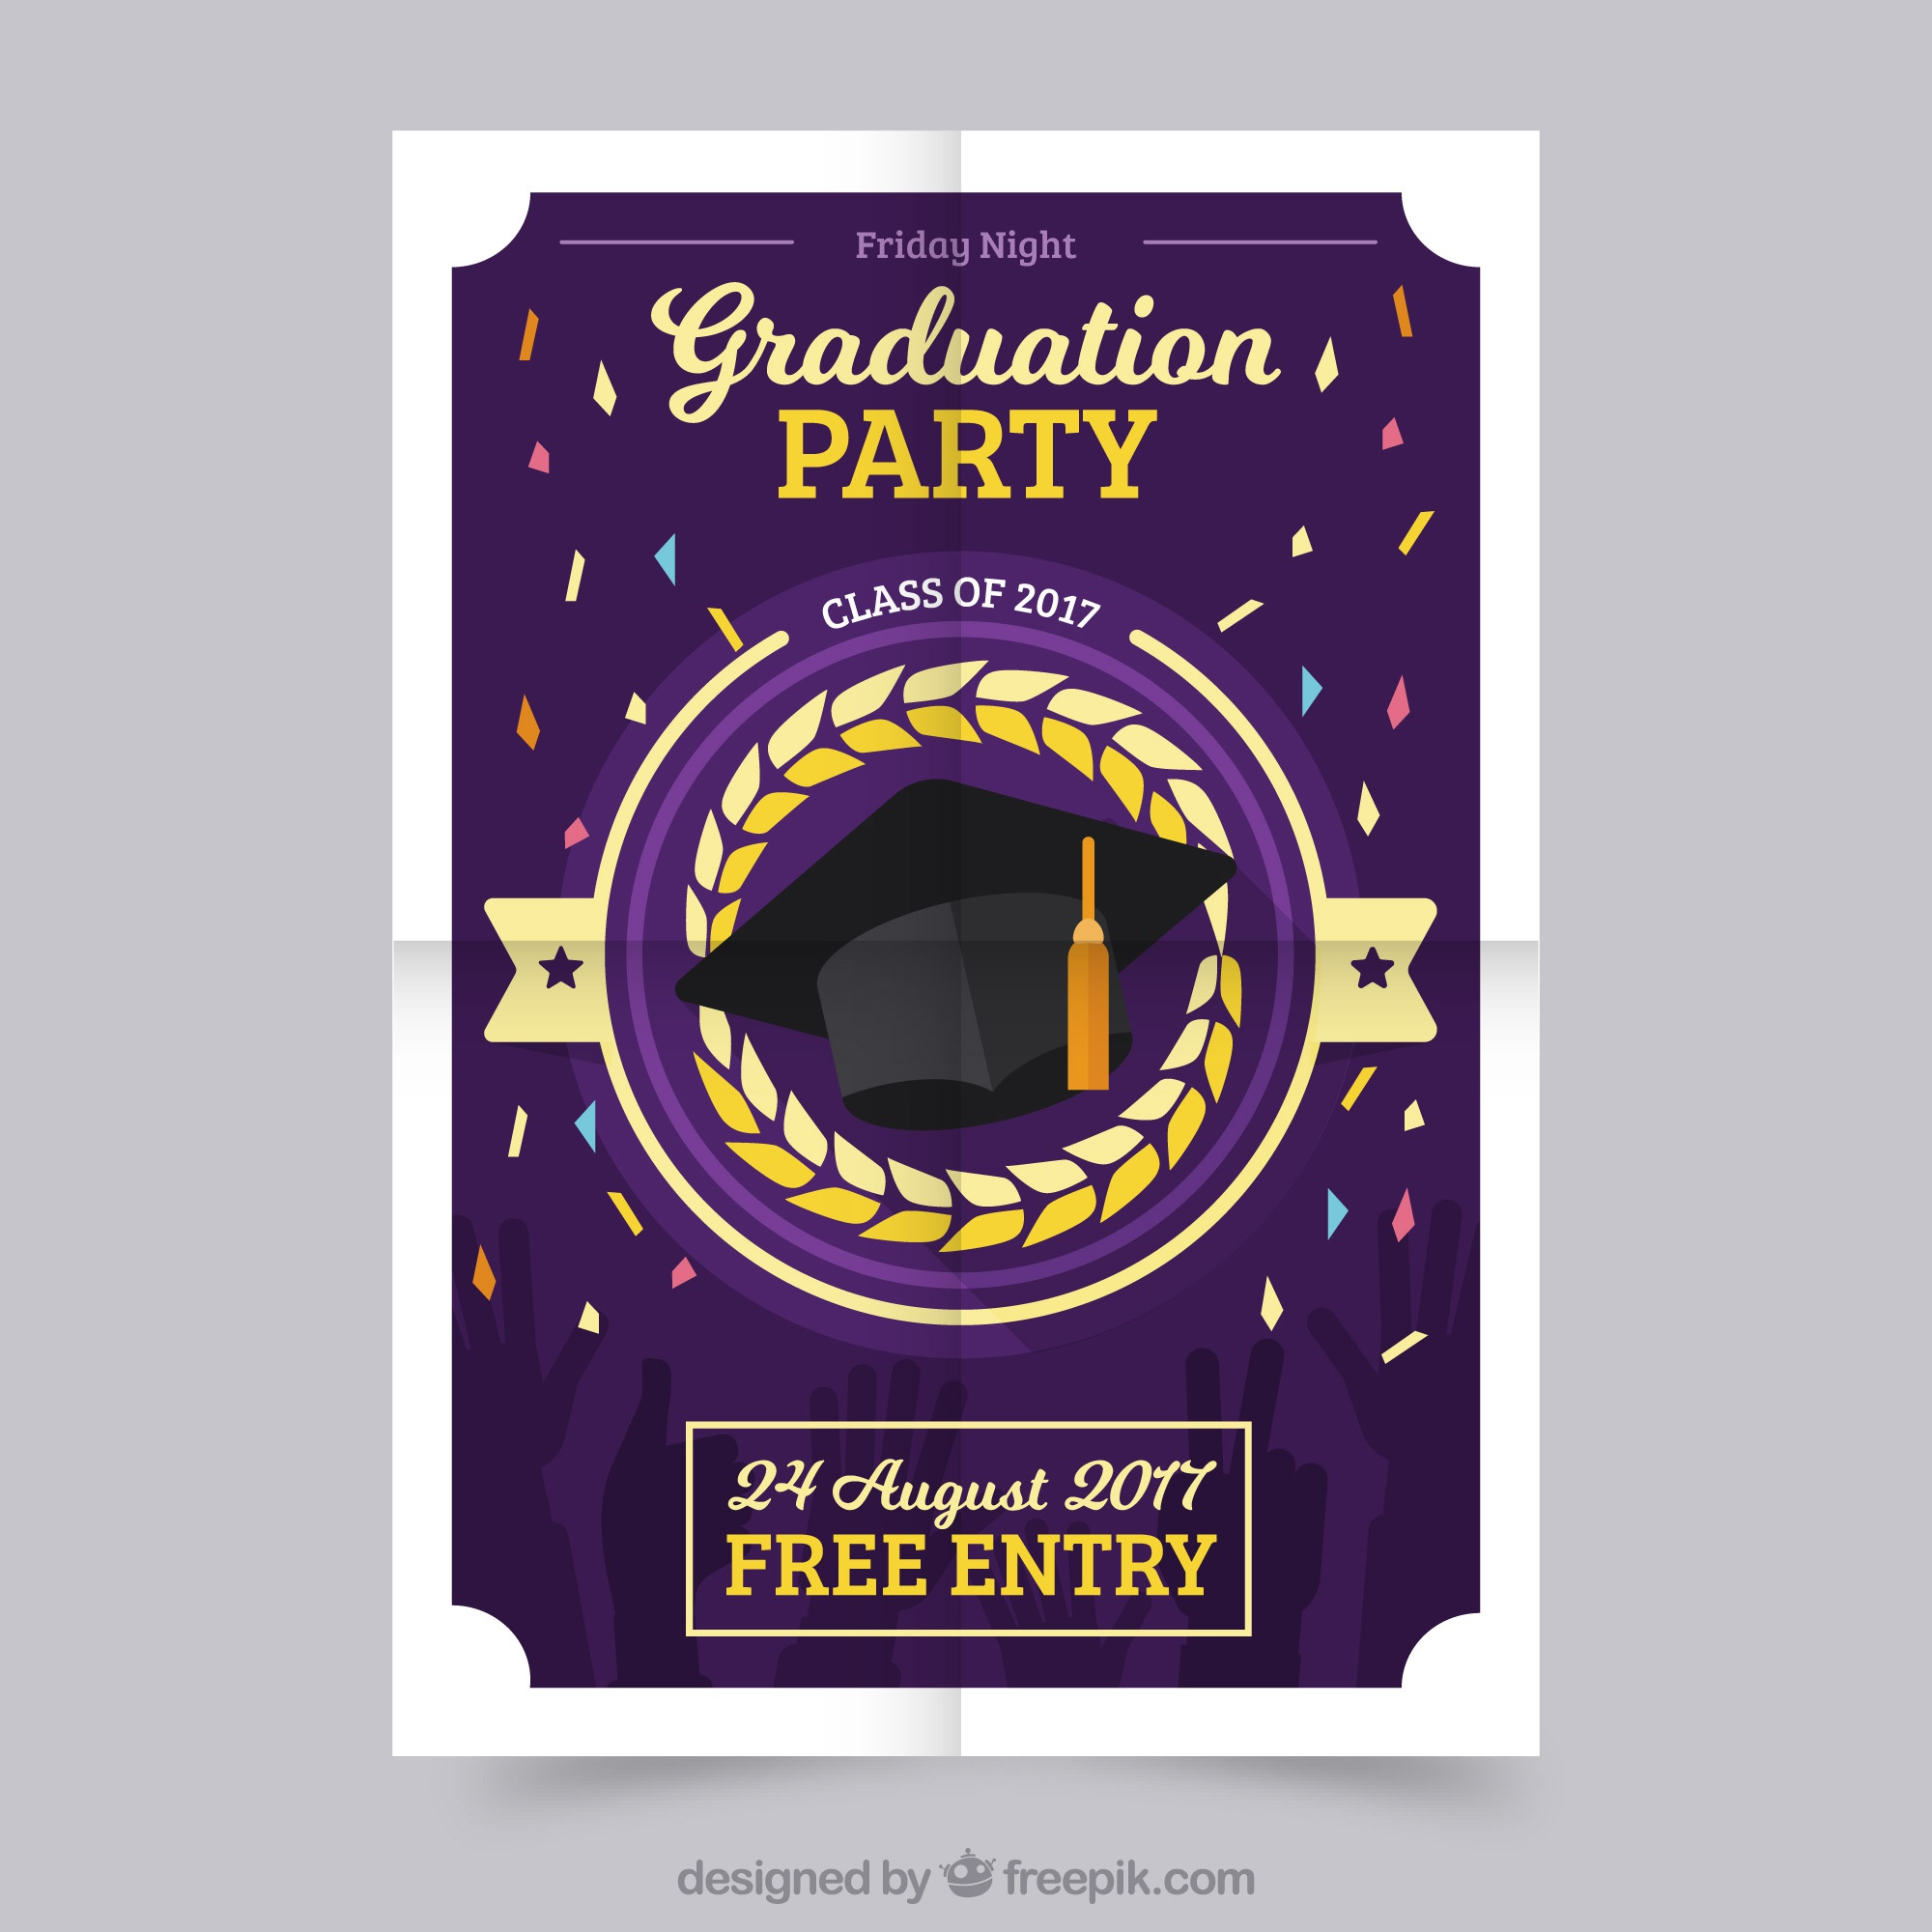 Graduation party poster with confetti